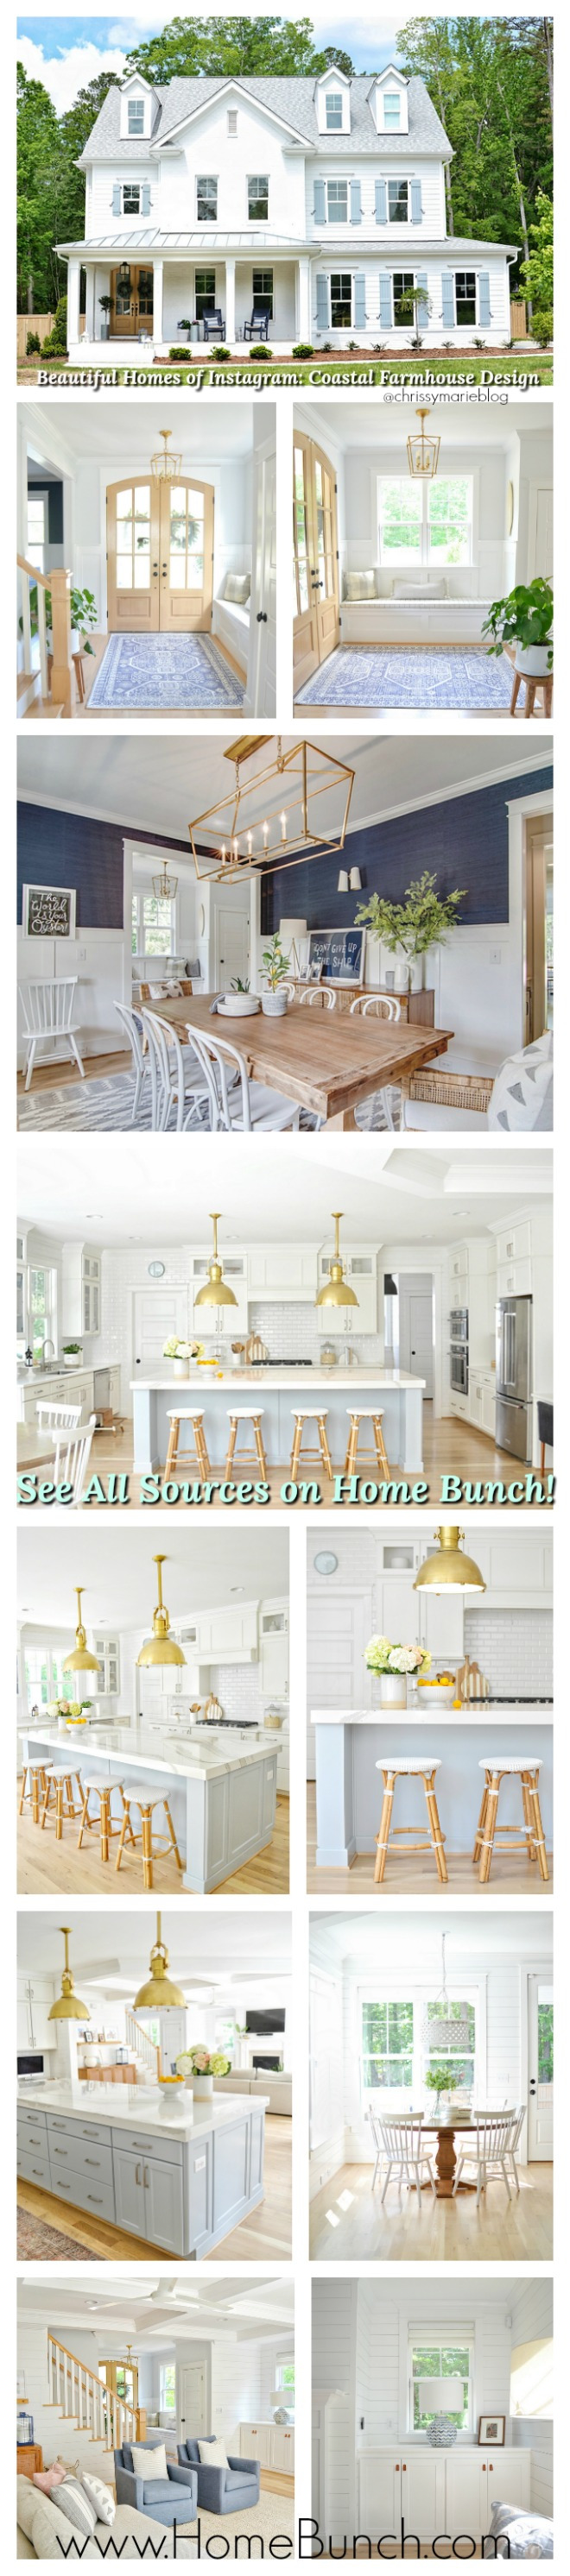 Beautiful Homes of Instagram Coastal Farmhouse Design